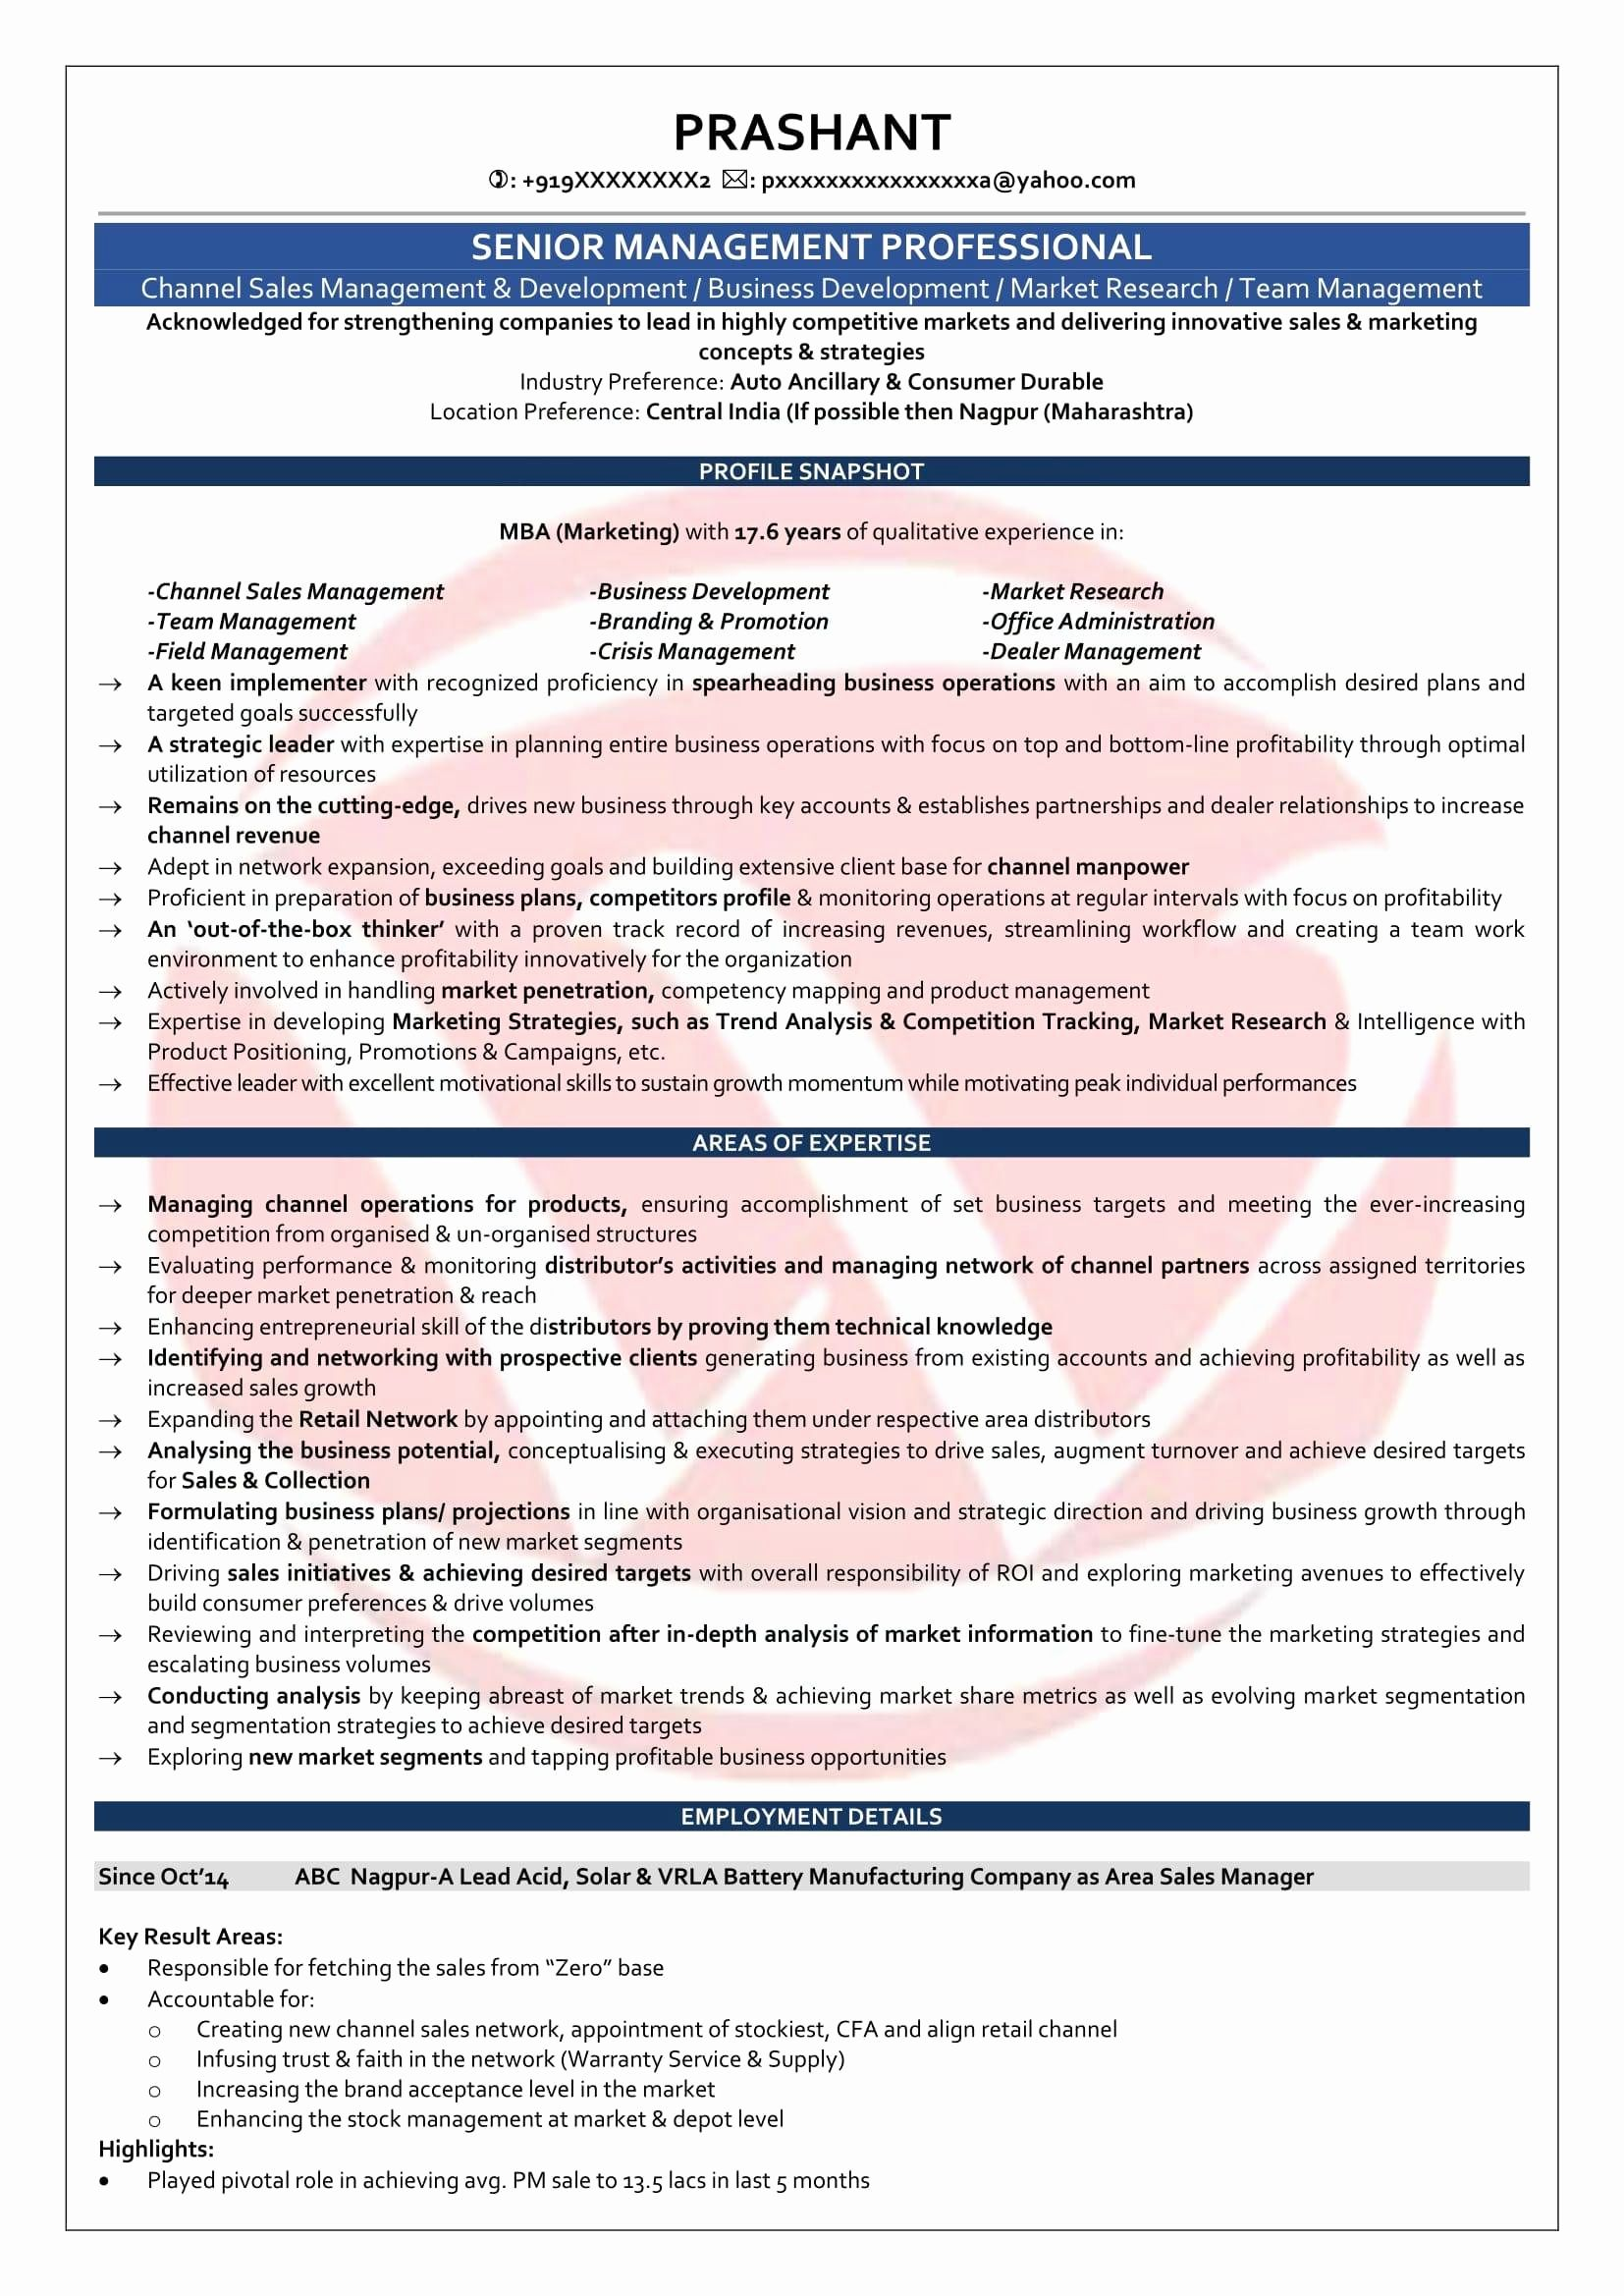 14 awesome resume format for mba marketing fresher (With